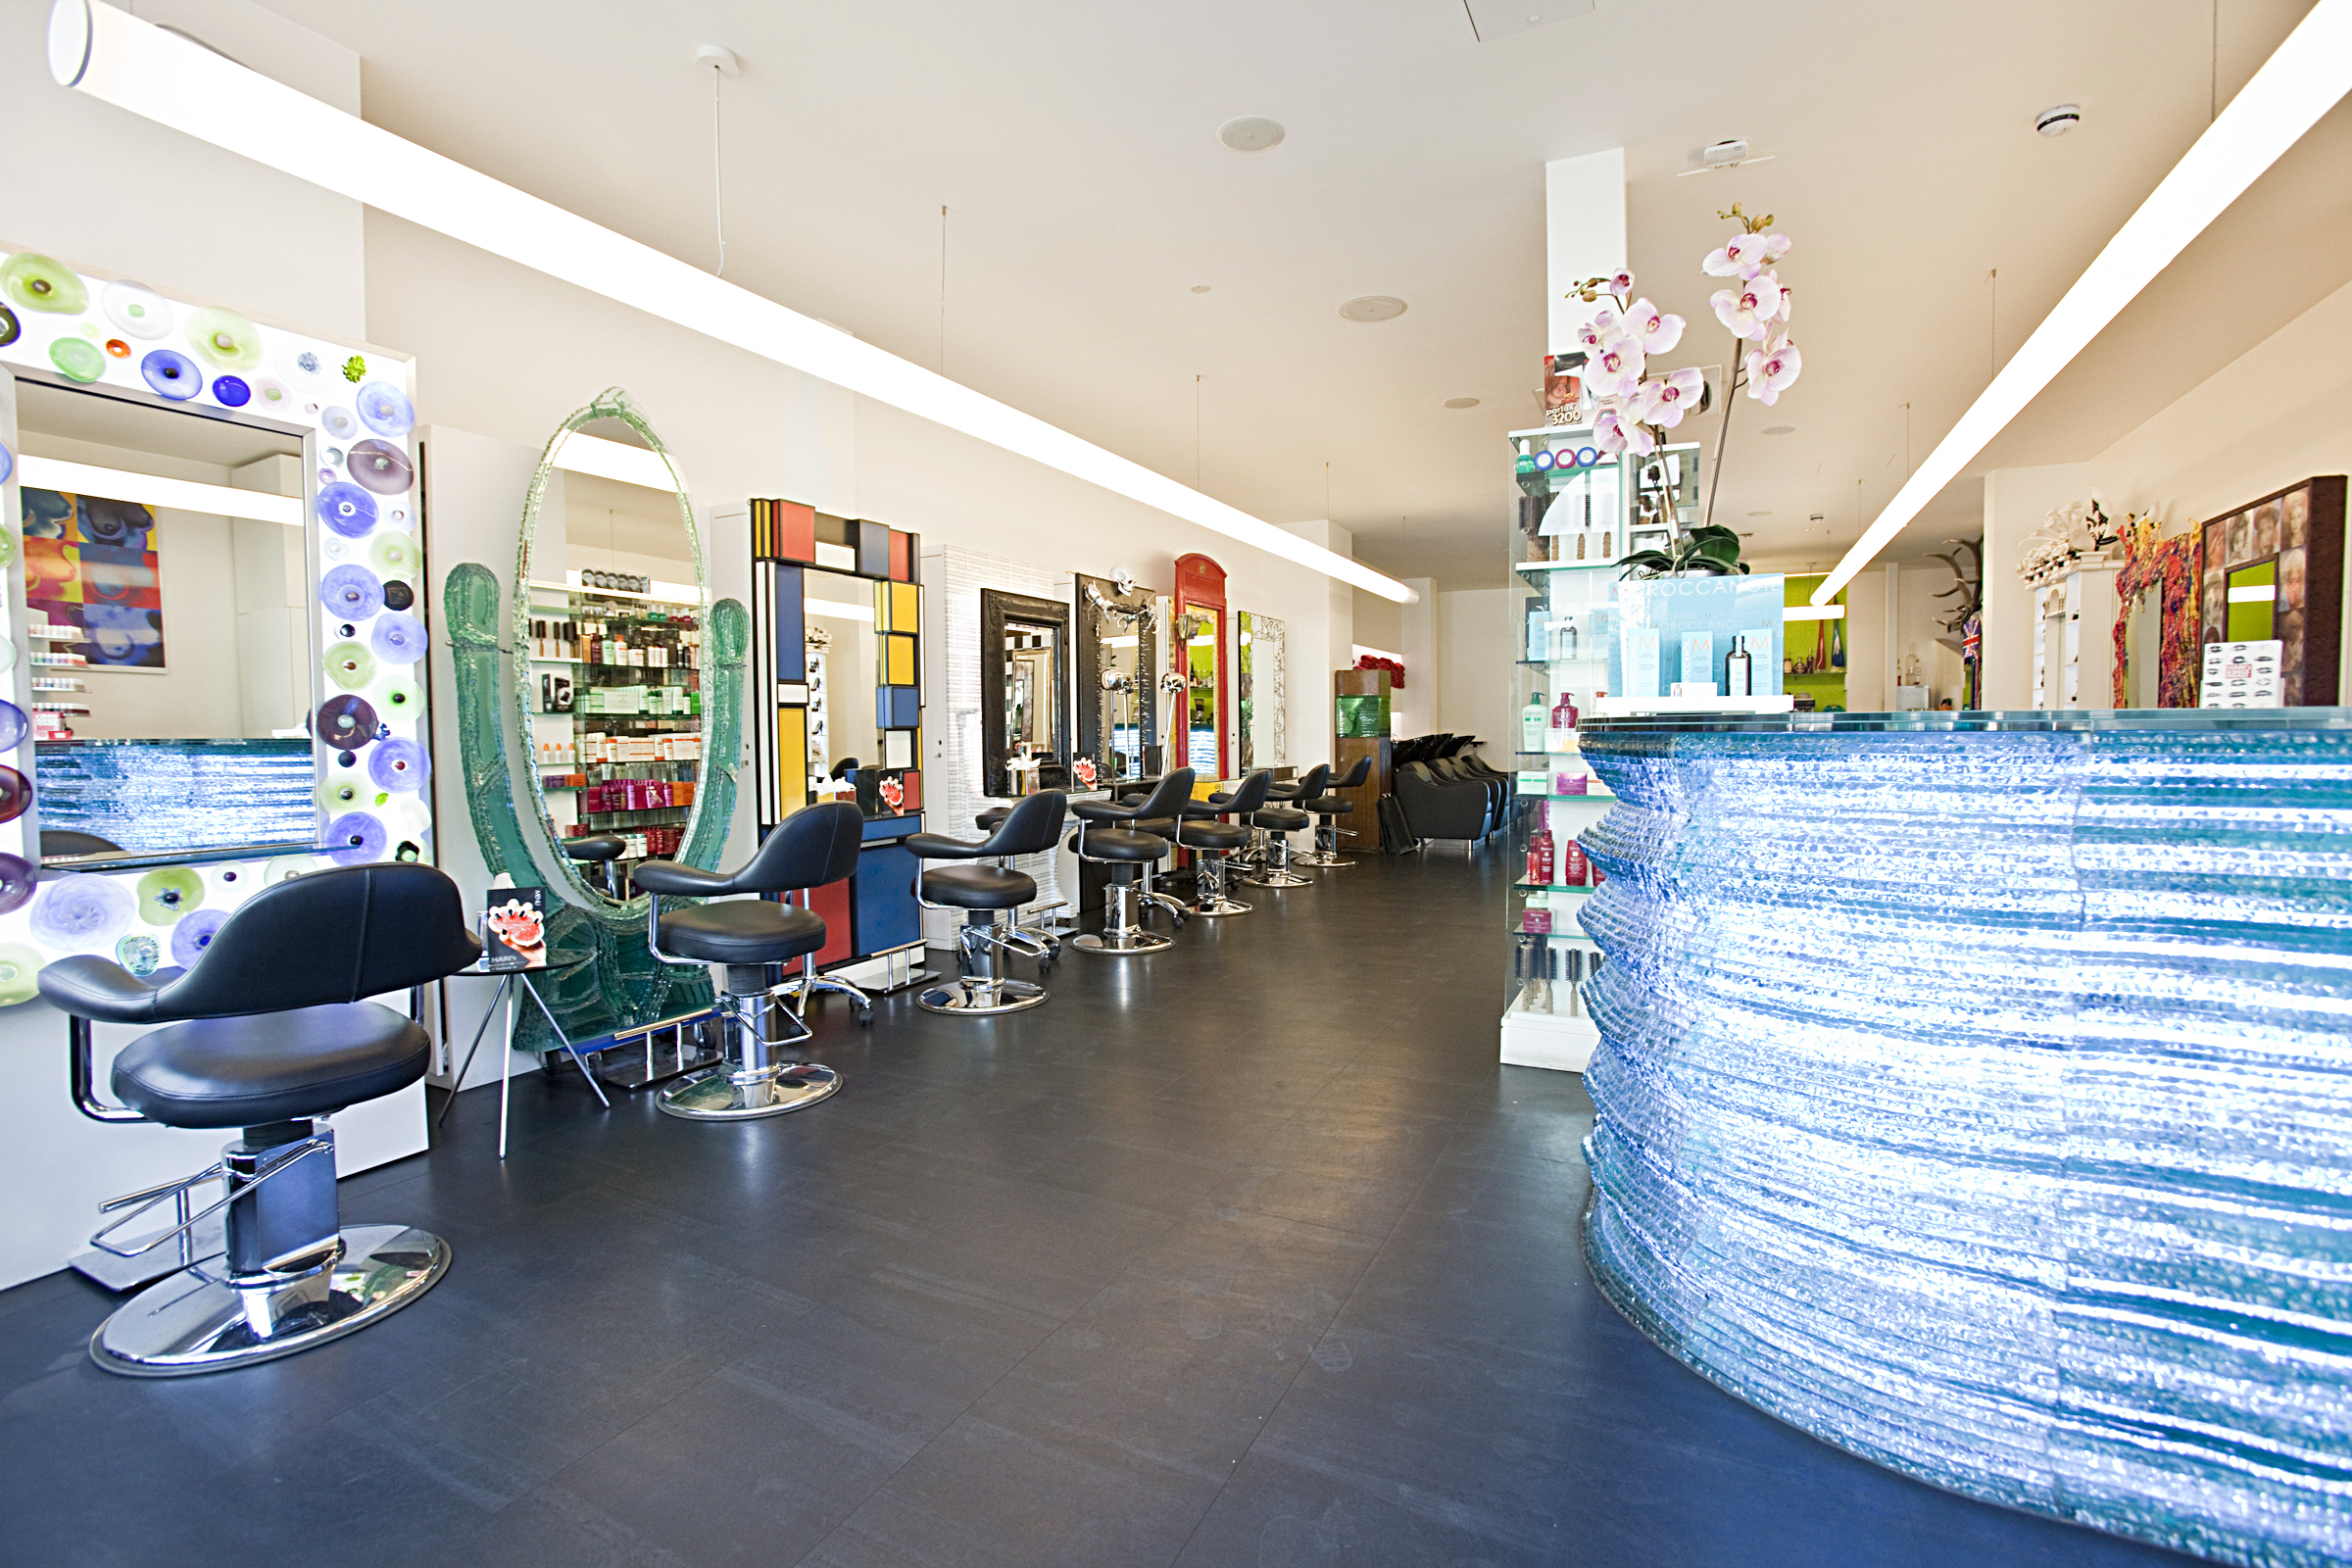 London's best hairdressers - Best hair salons in London - Time Out ...